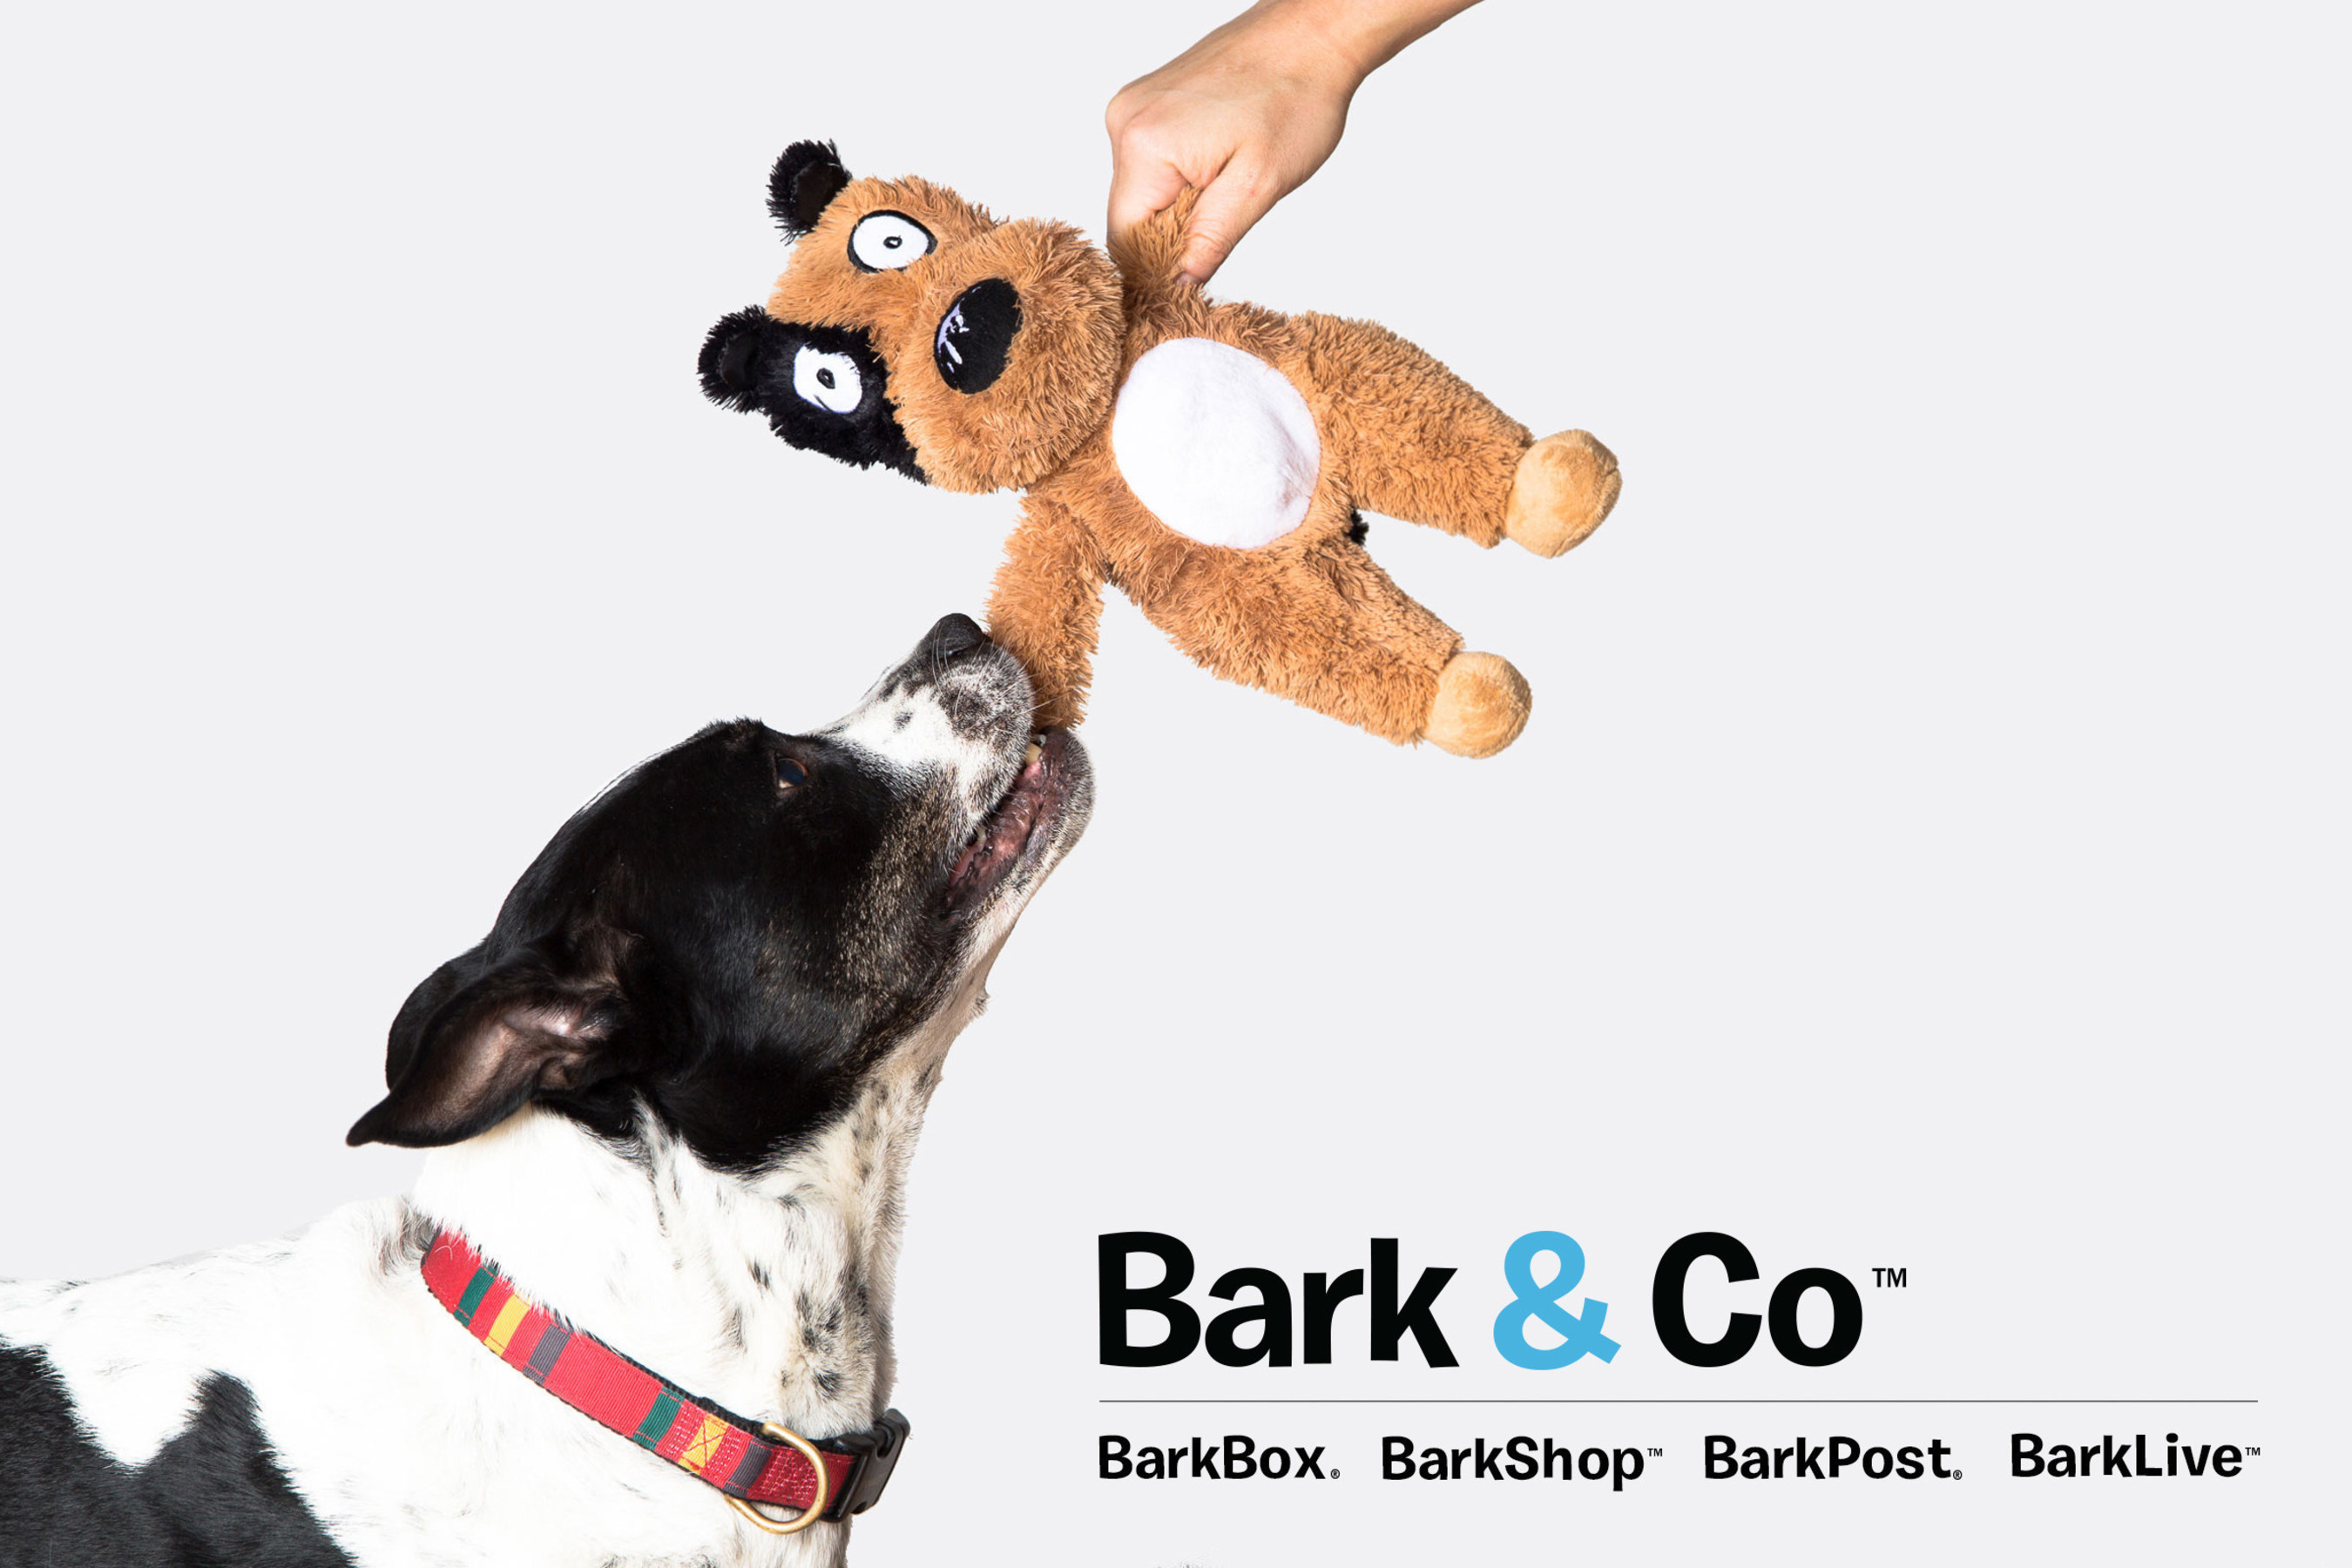 Bark & Co, the company behind BarkBox, BarkShop, BarkPost and BarkLive, announced $60 million in new funding to grow and expand its offerings for dogs and their people.